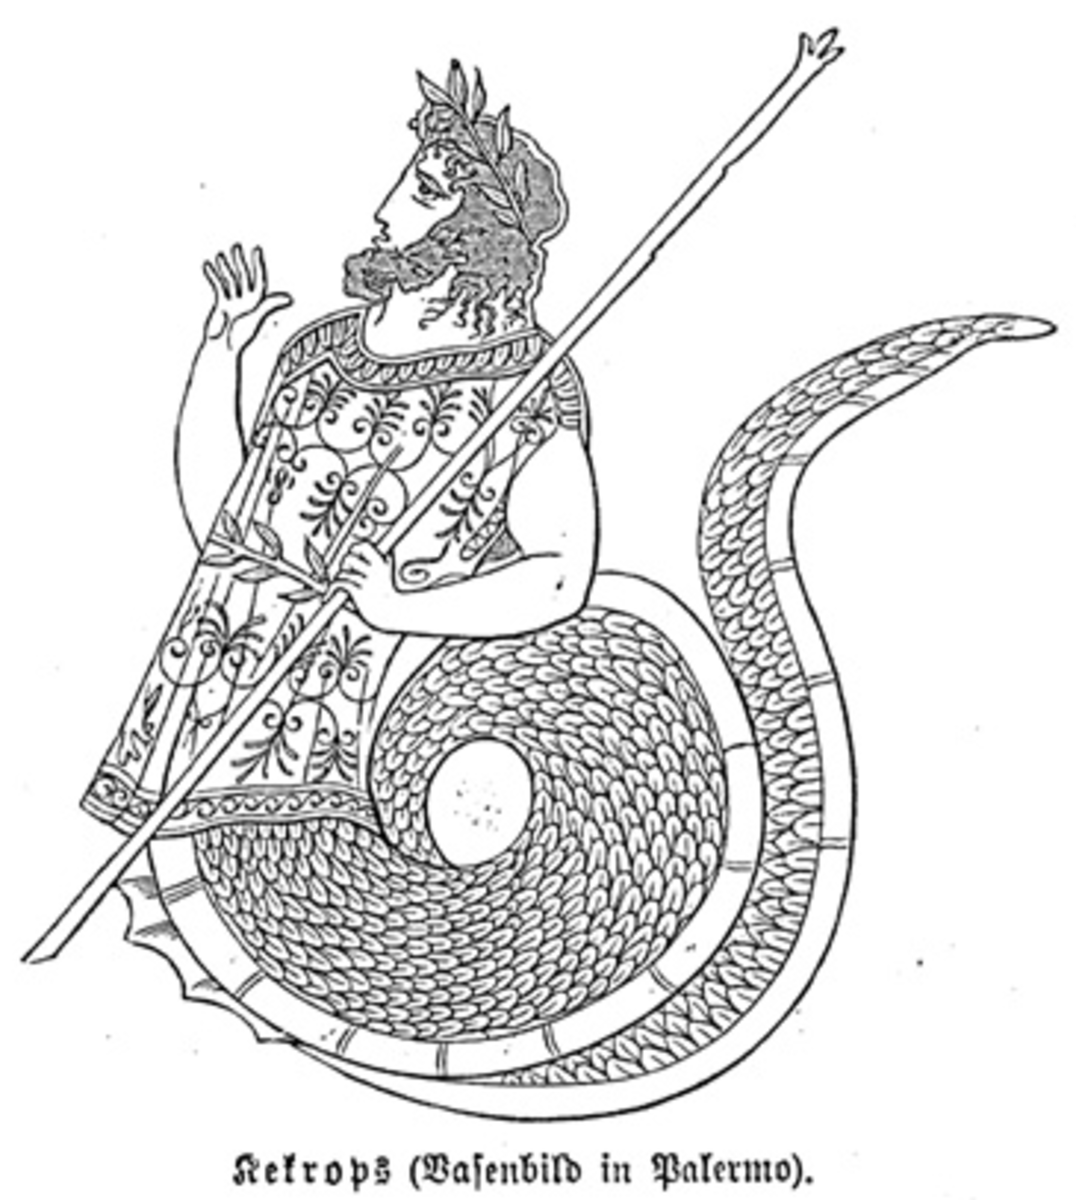 Cecrops I is an example of a Greek reptilian god.